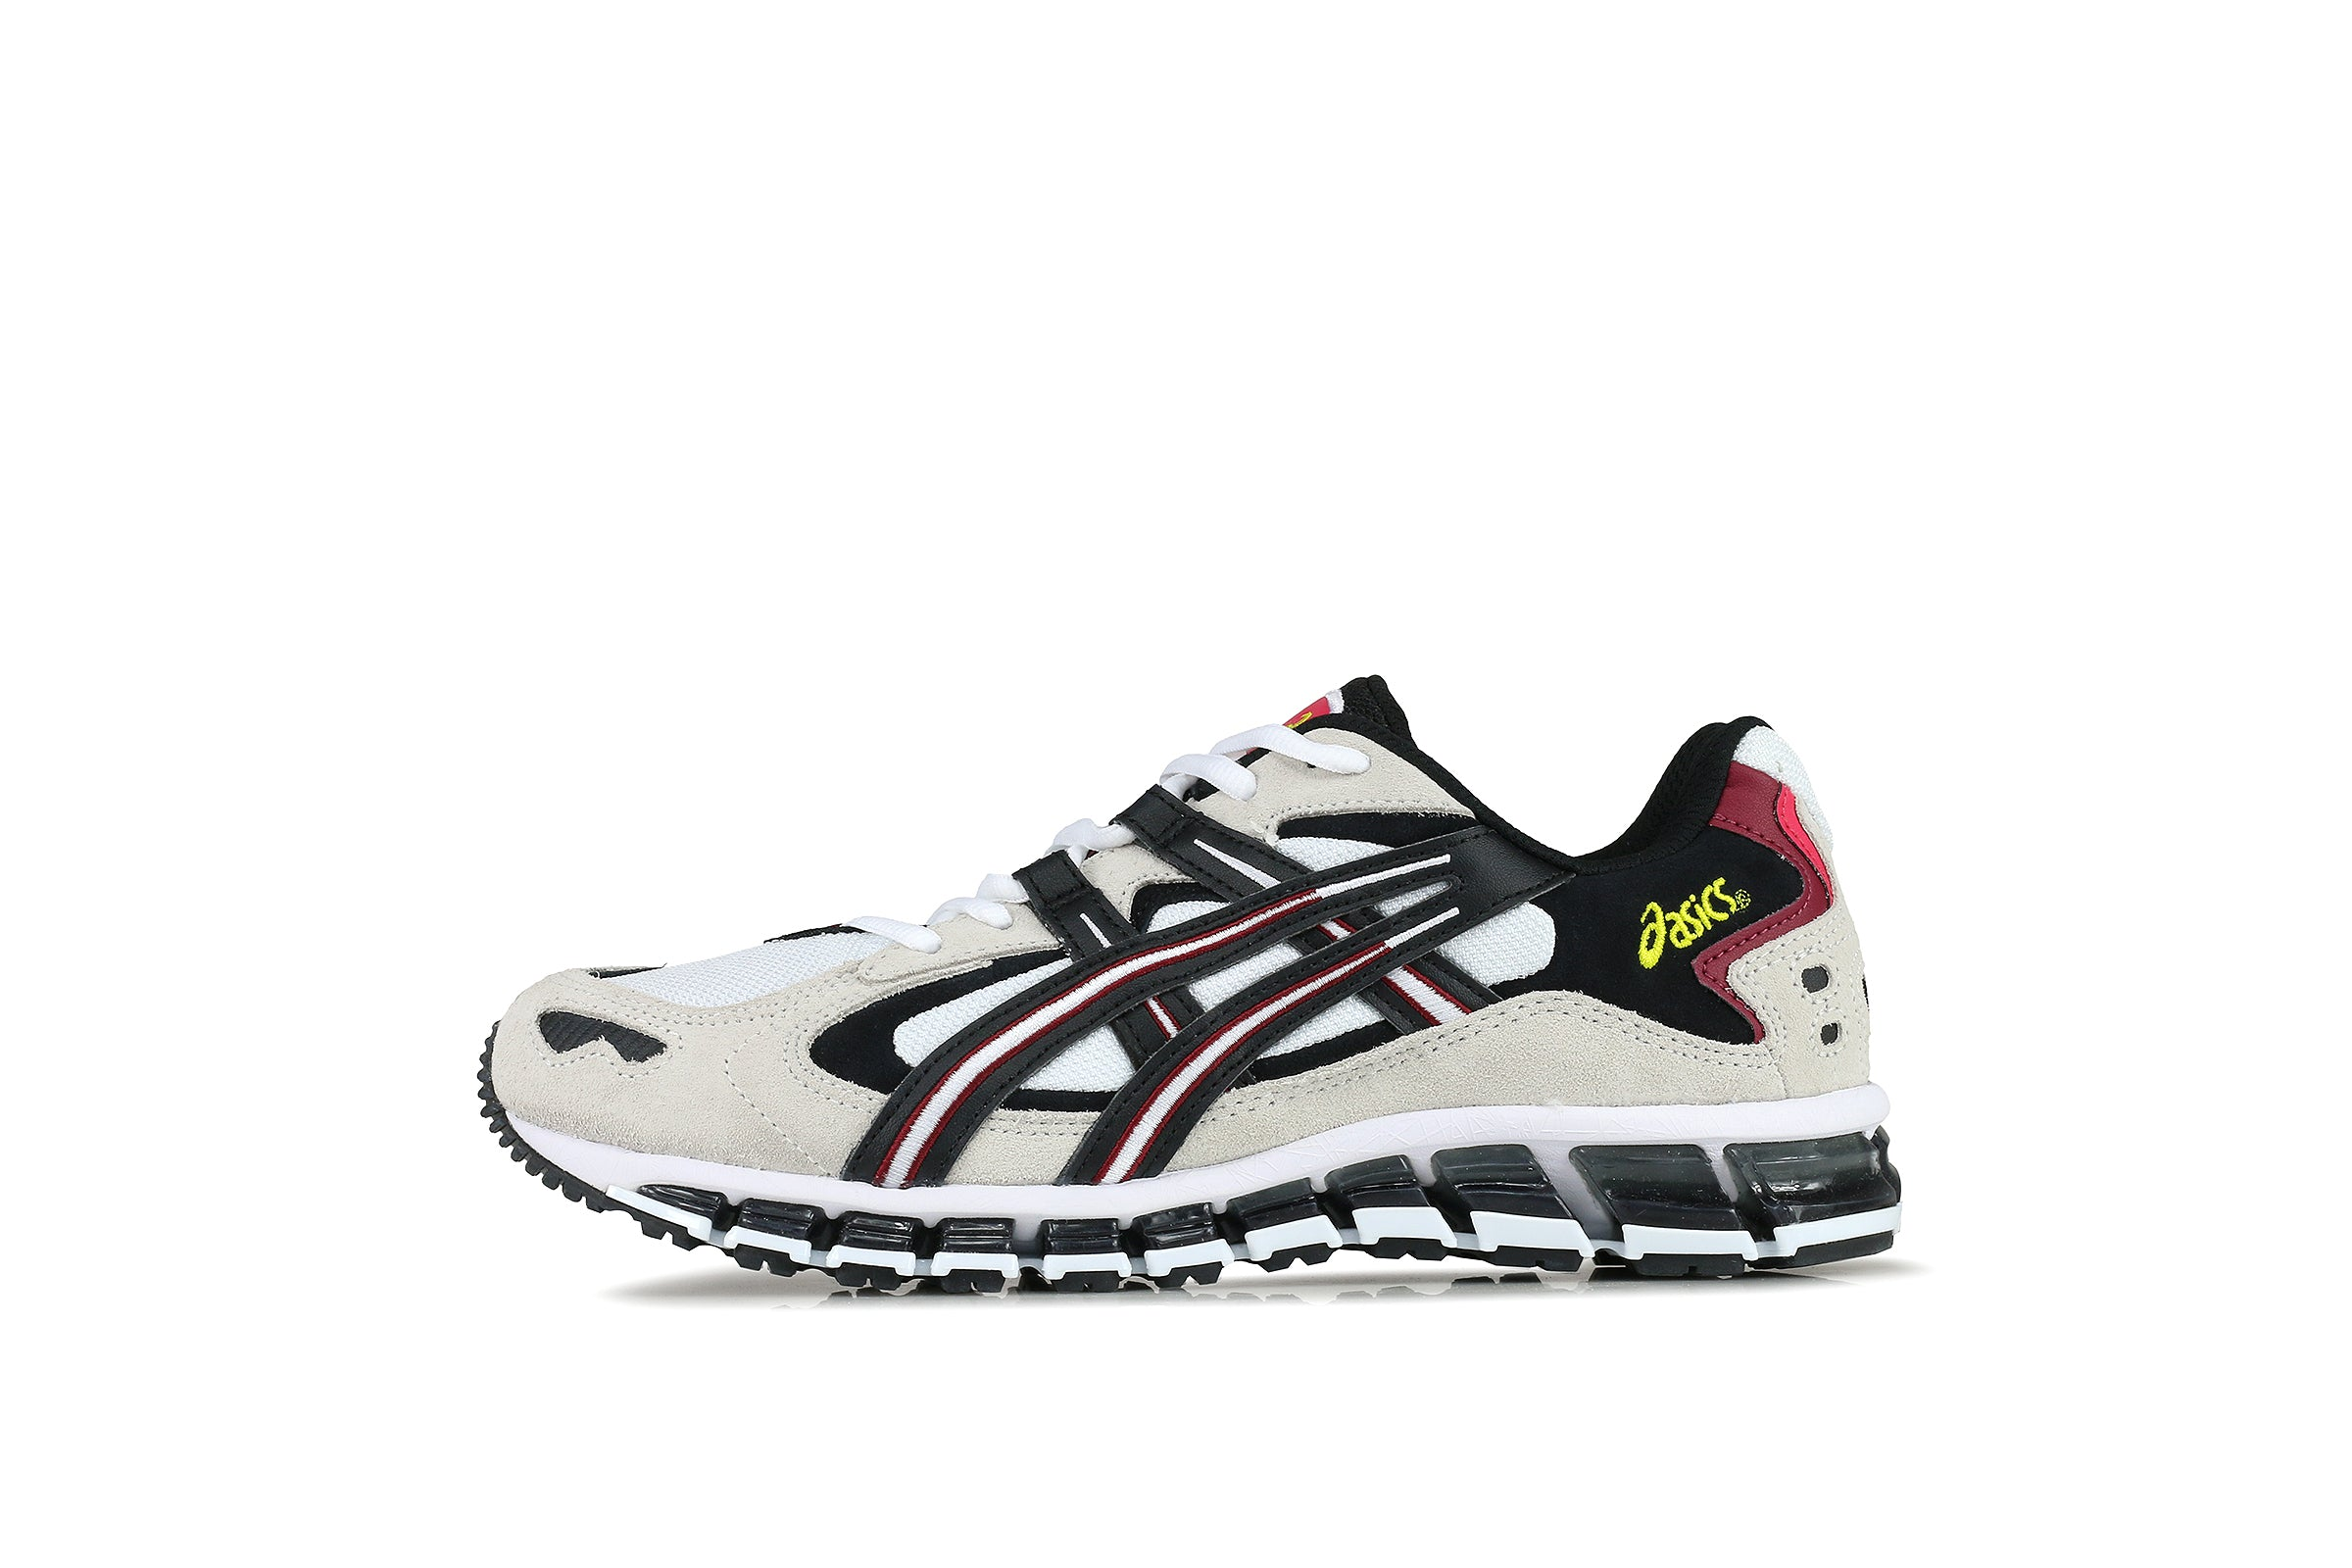 Buy now Asics Gel quantum 360 5 1021A235 020